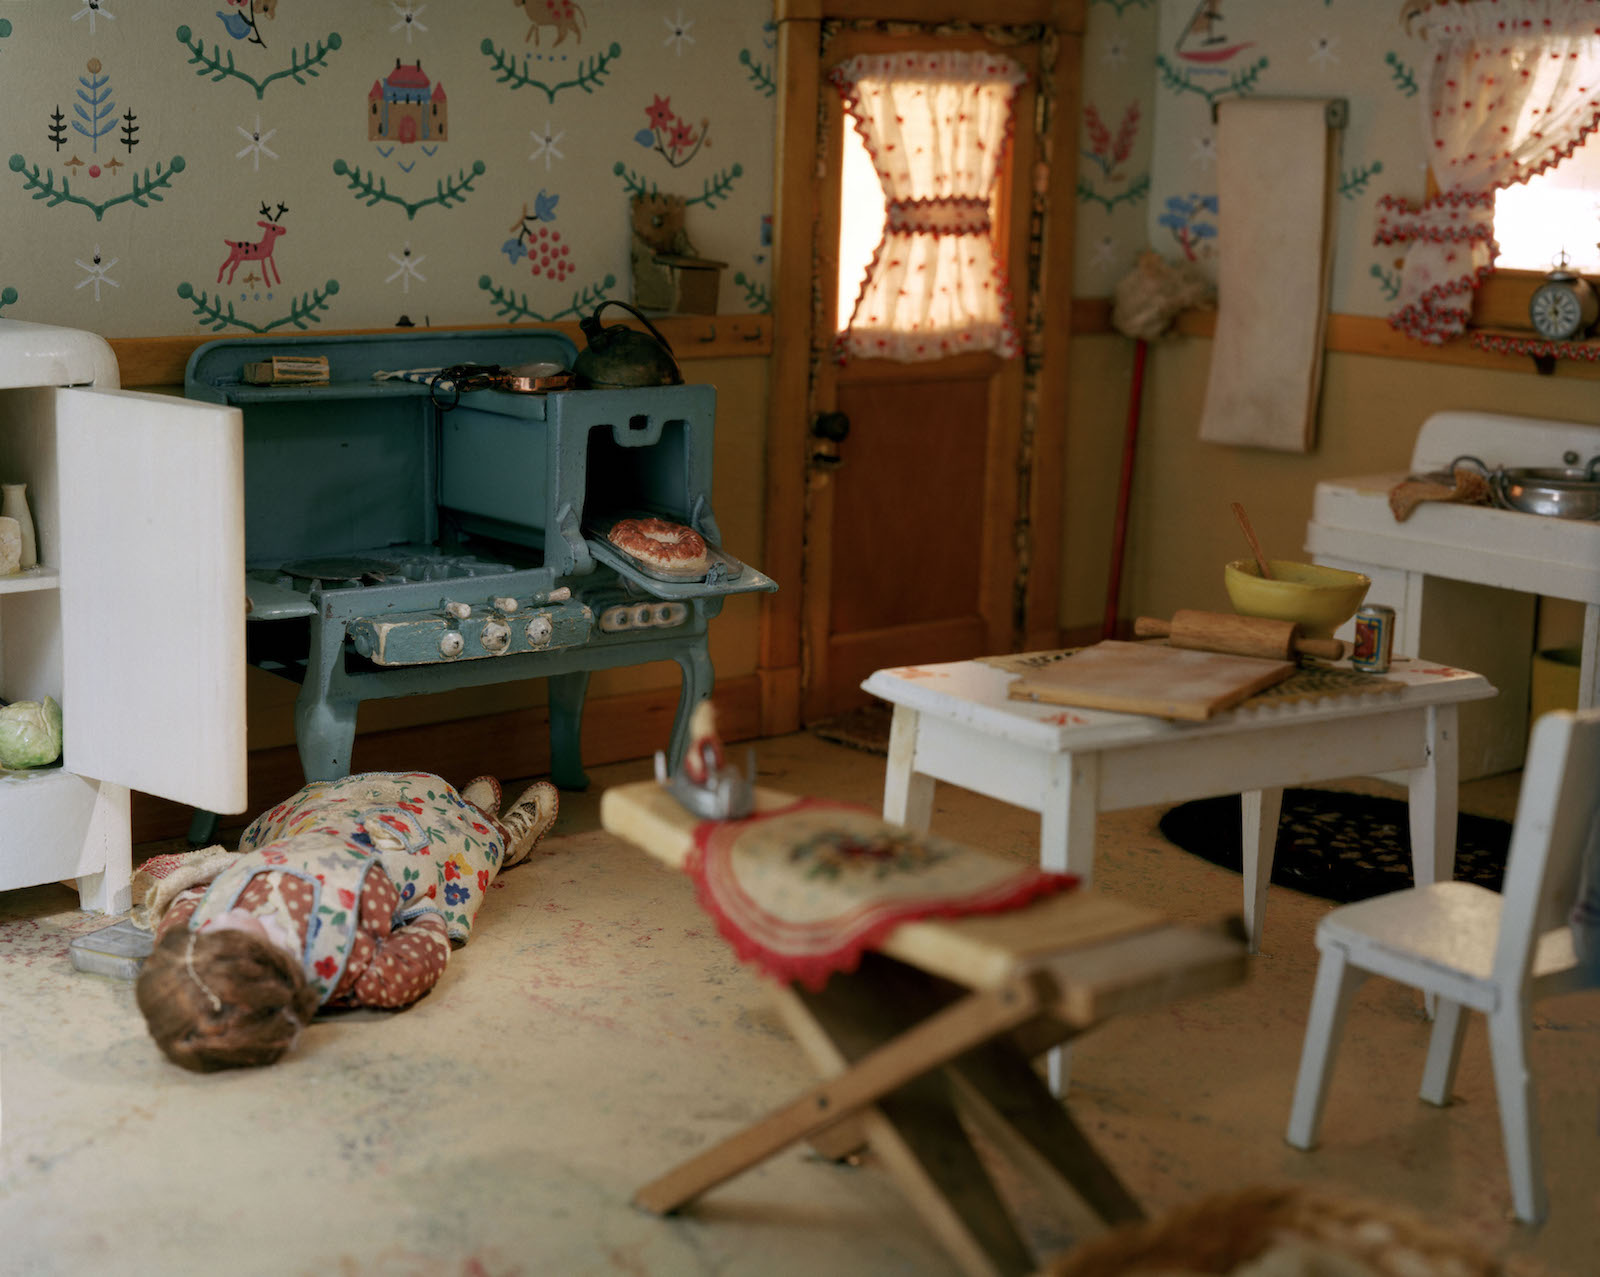 Lower class living room -  To Show The Extent Of Bodily Decomposition All In The Pursuit Of